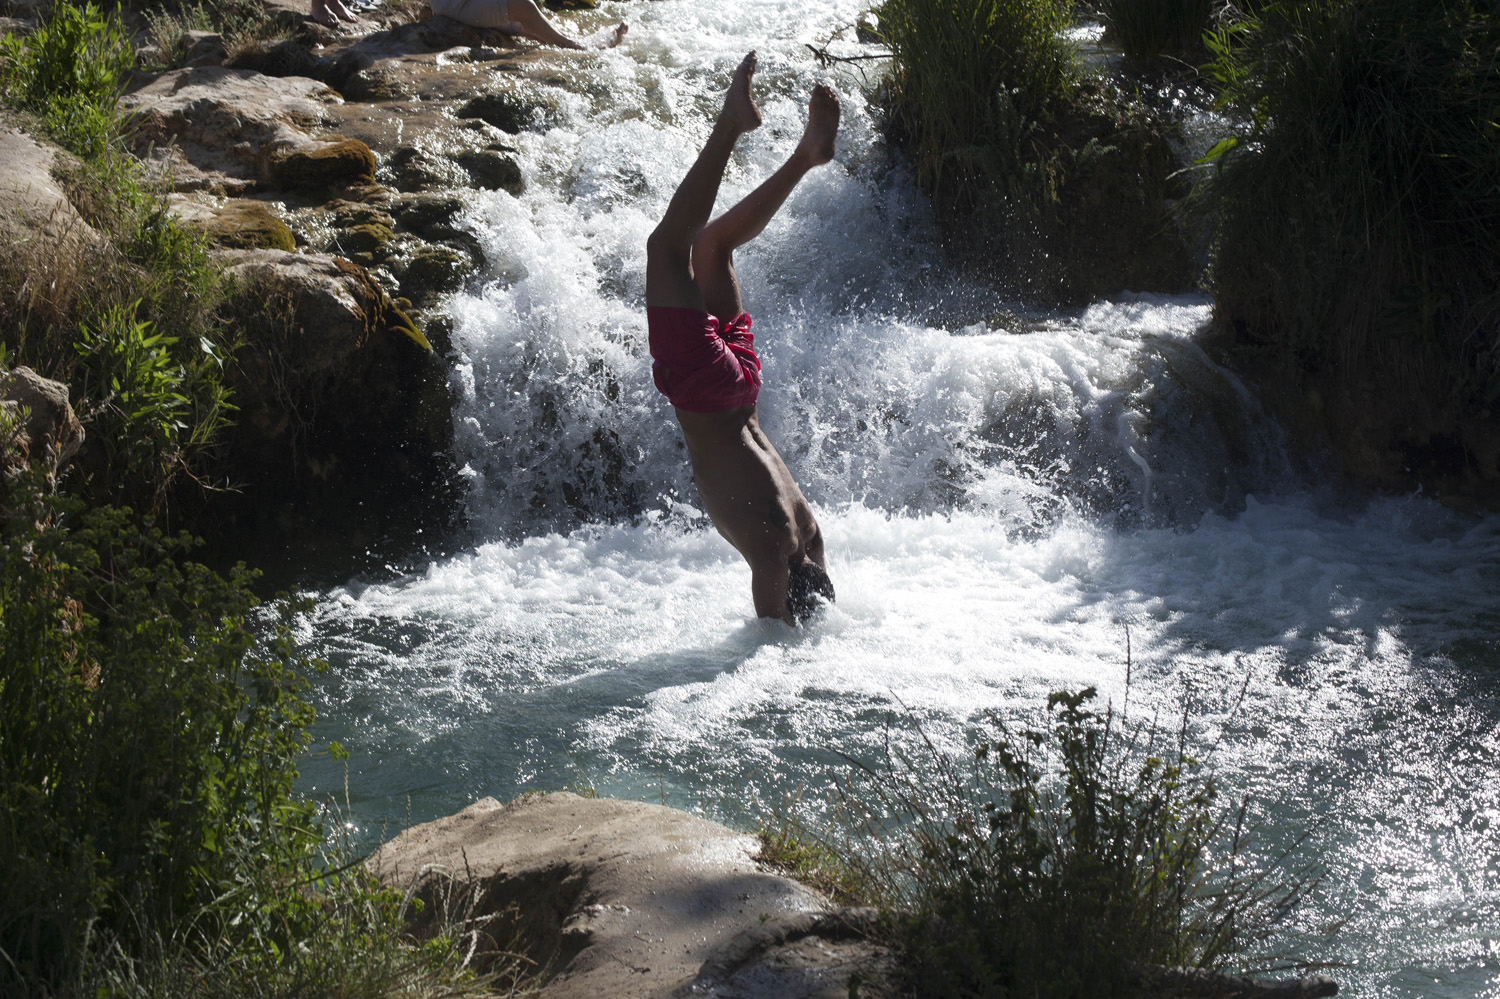 A youth dives into a natural rock pool in the Lagoons of Ruidera Natural Park in Ruidera, Spain,  June 8, 2014.